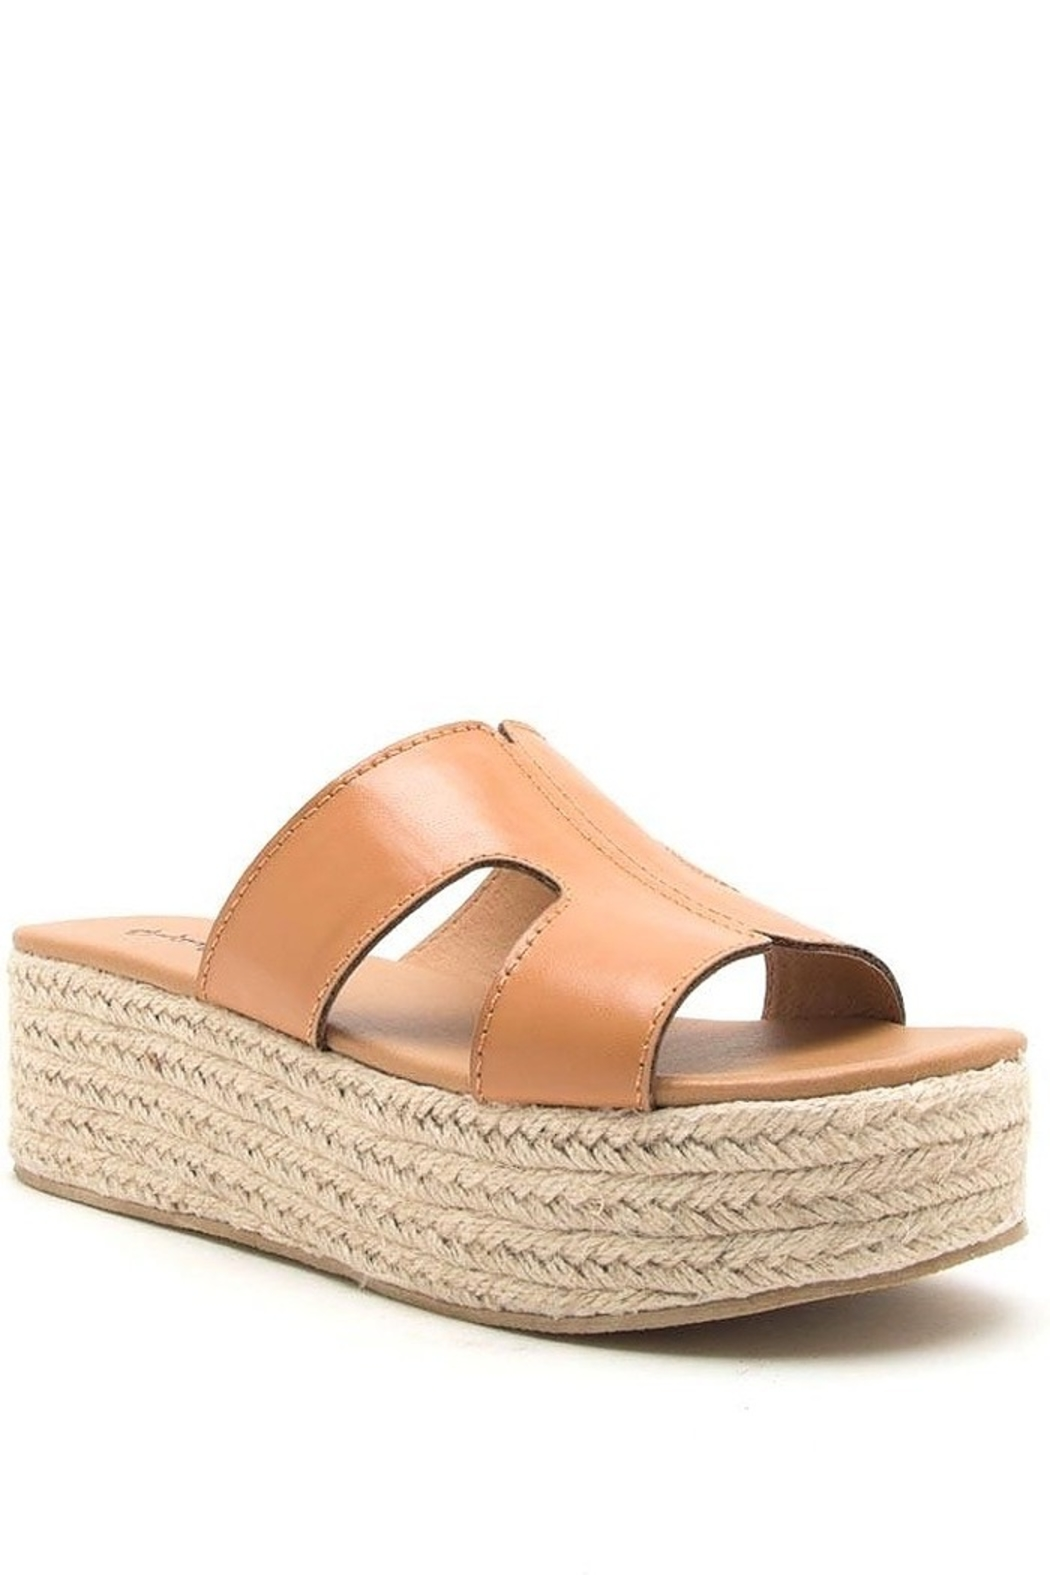 fbdd9068365 Qupid One Band Wedges from Orlando by Zingara Souls — Shoptiques